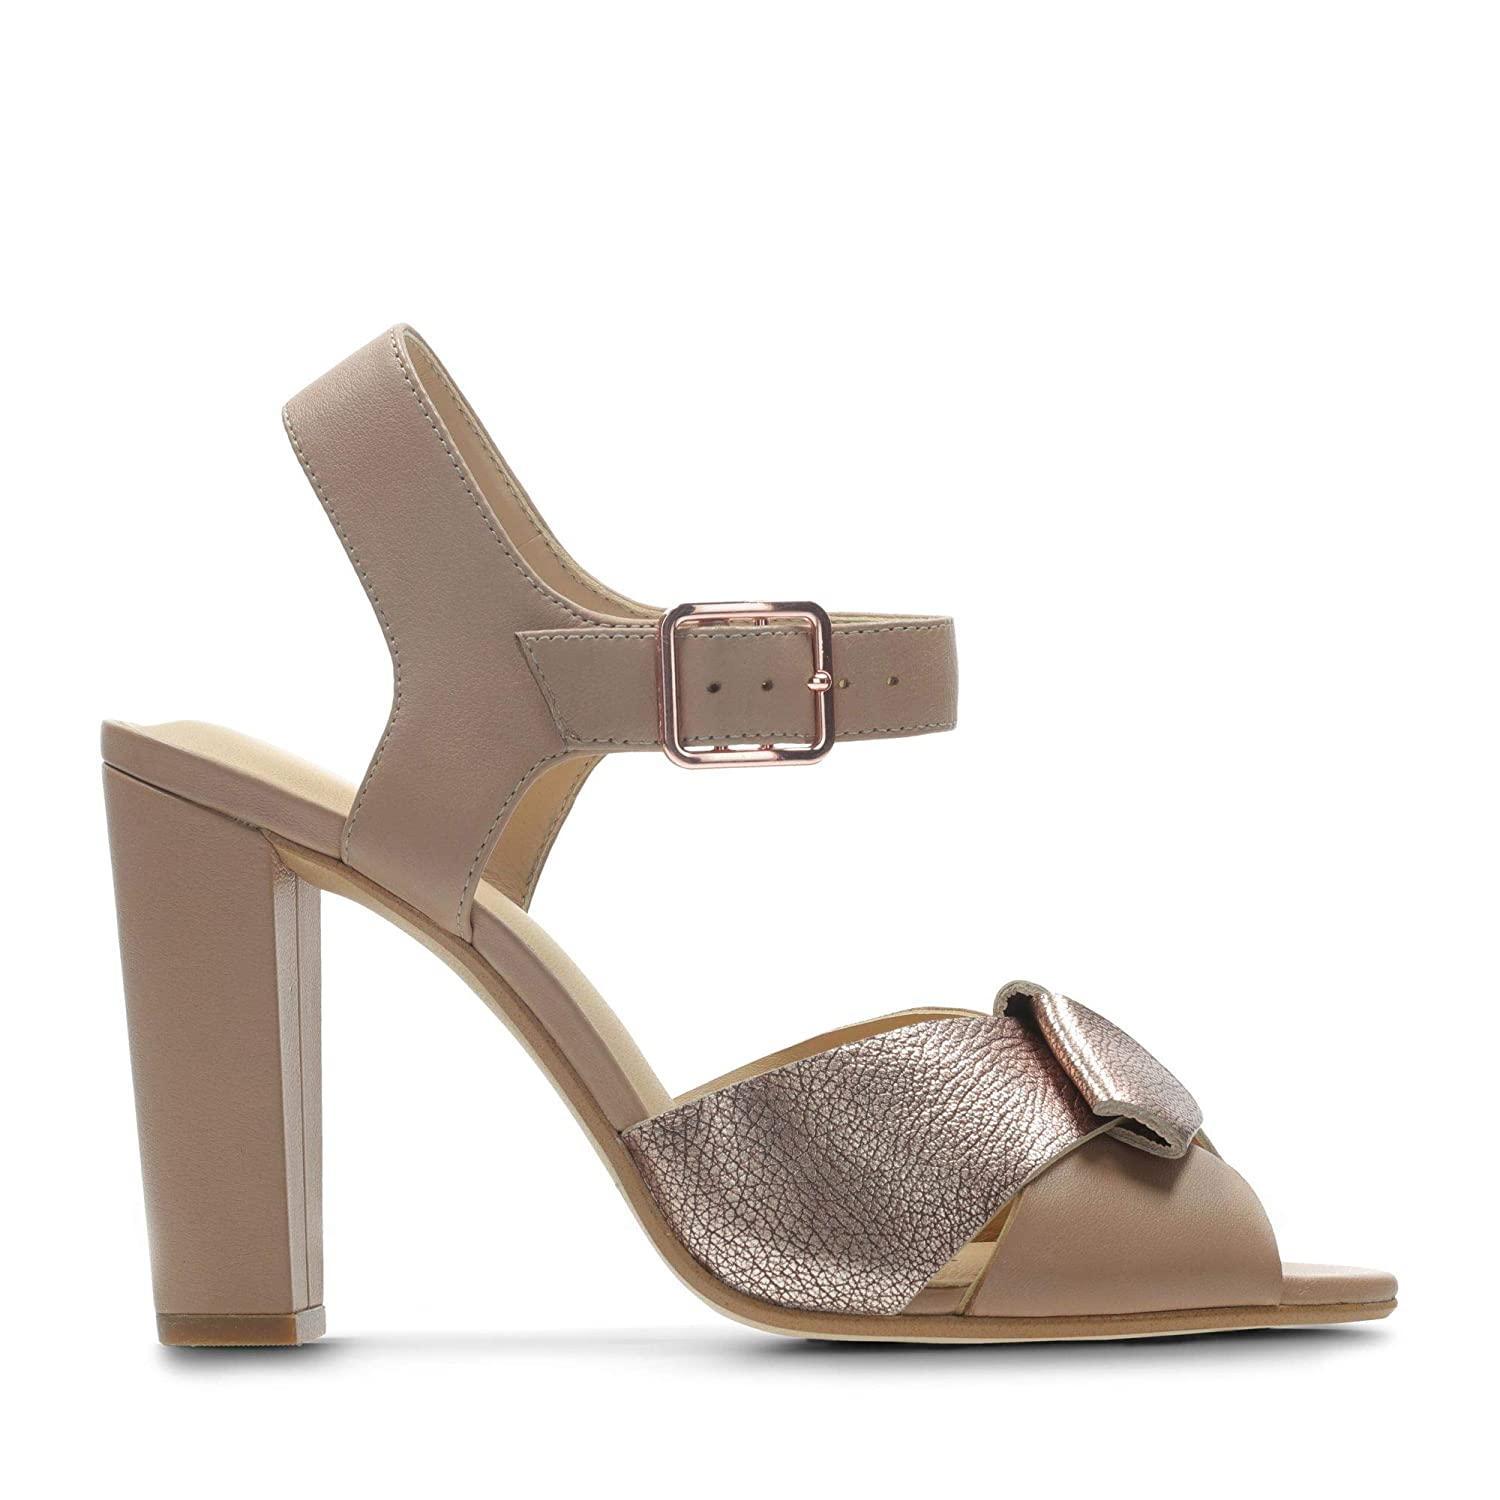 dea4f11c0f1 Clarks Curtain Charm Leather Sandals in Standard Fit Size 7½ Beige   Amazon.co.uk  Shoes   Bags